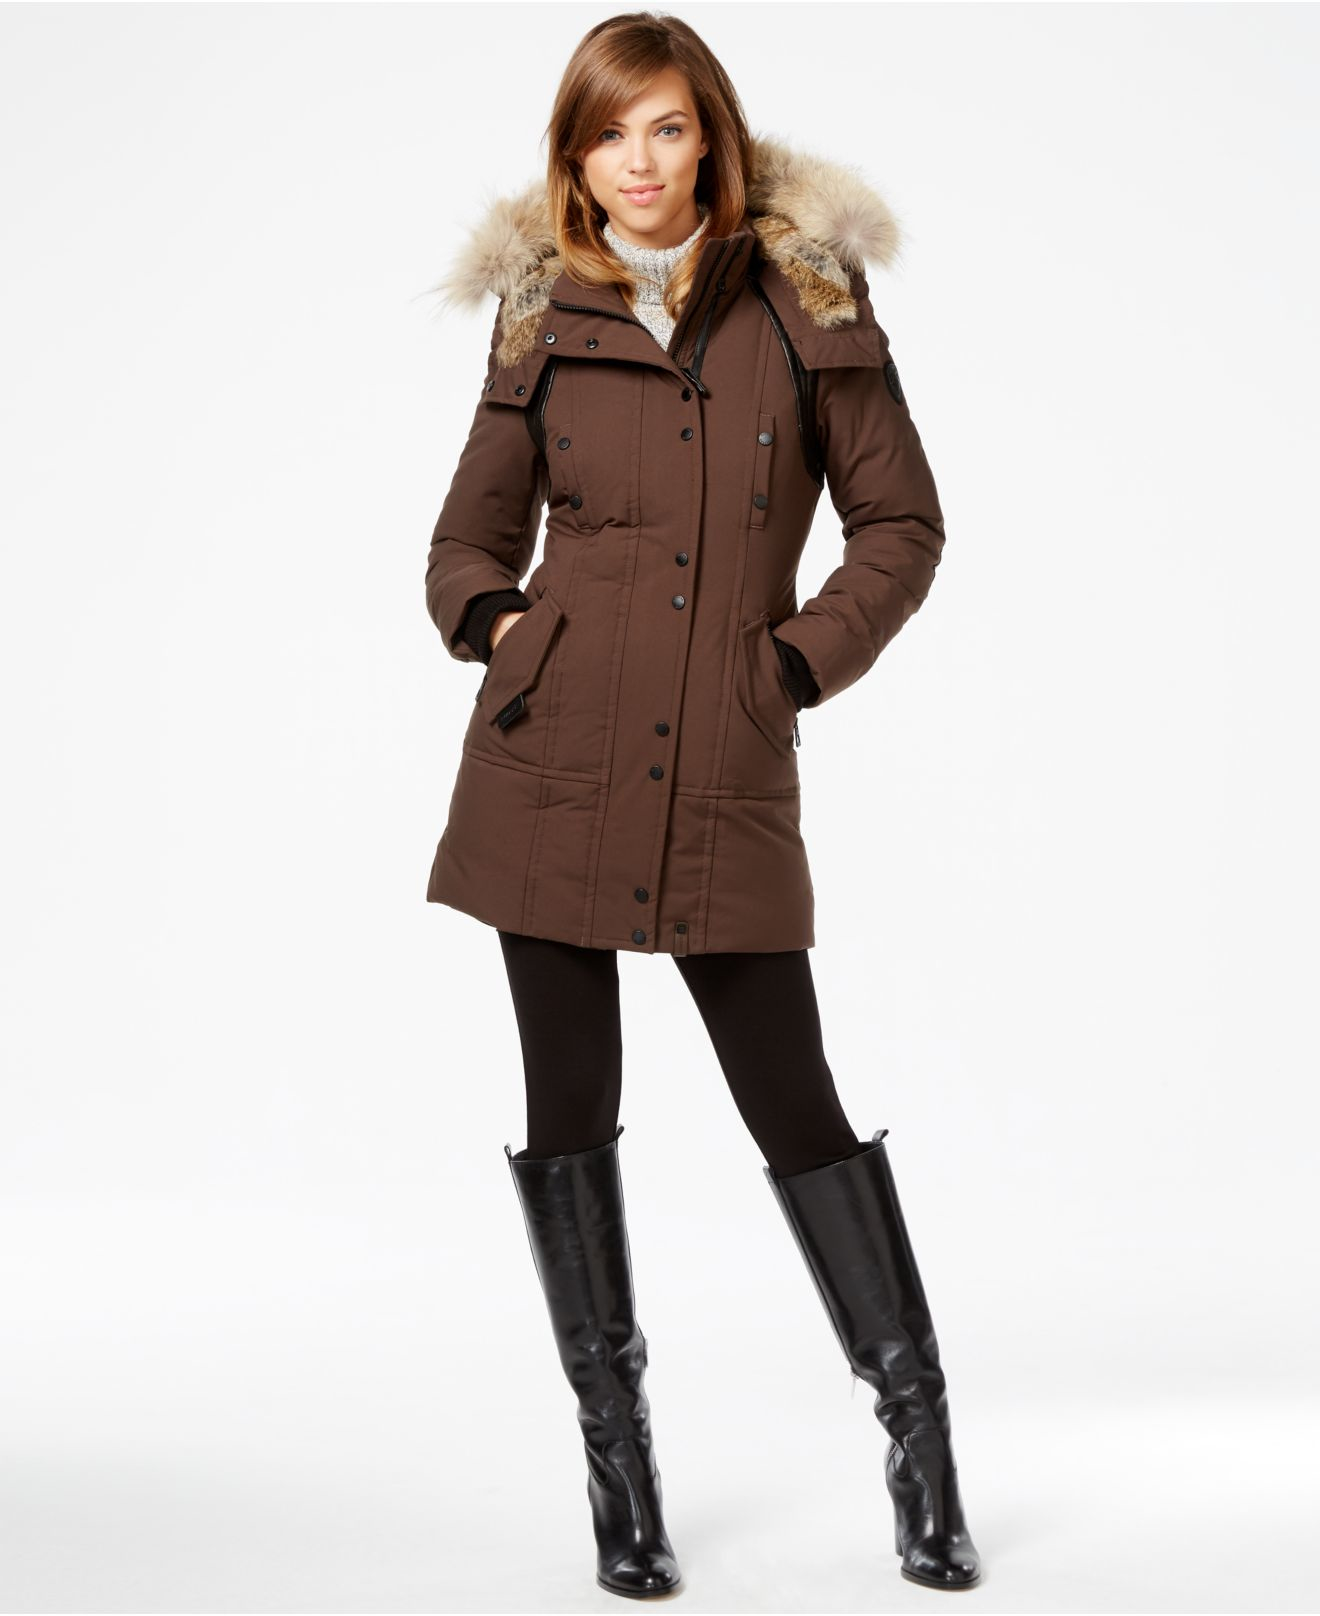 Rudsak Real-fur-trim Leather-trim Coat in Brown | Lyst